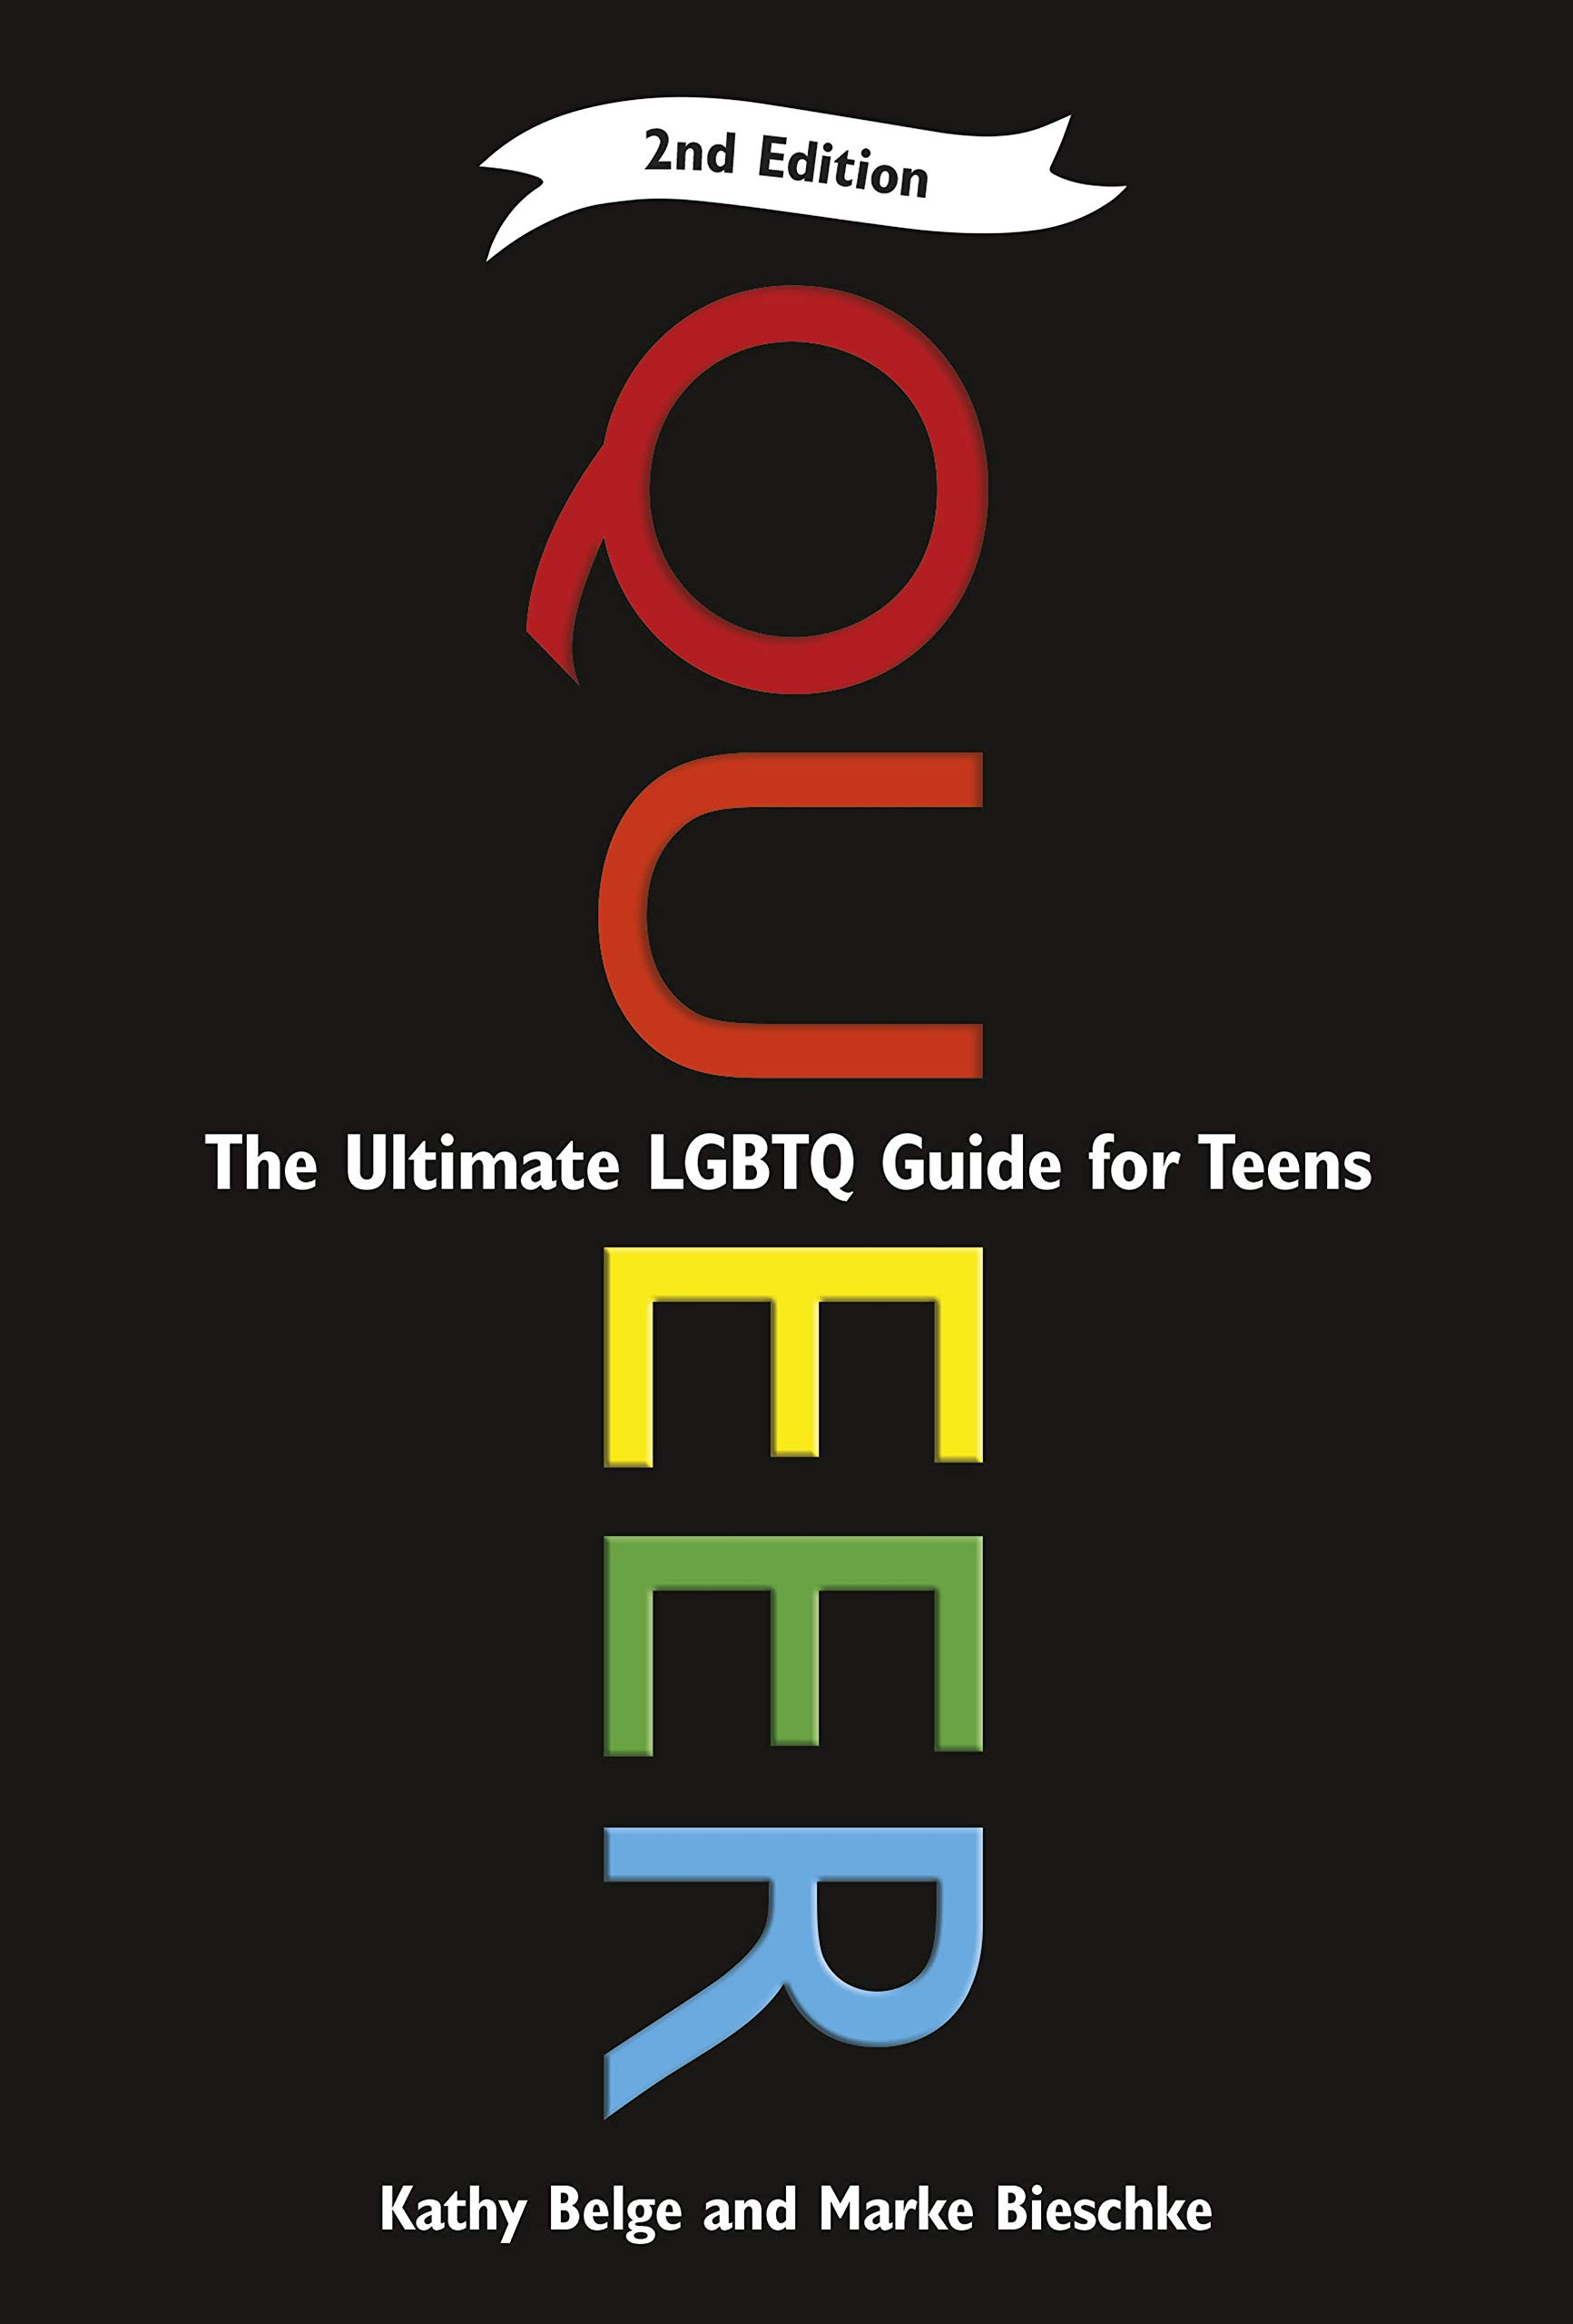 Queer, 2nd Edition: The Ultimate LGBTQ Guide for Teens by Zest Books TM